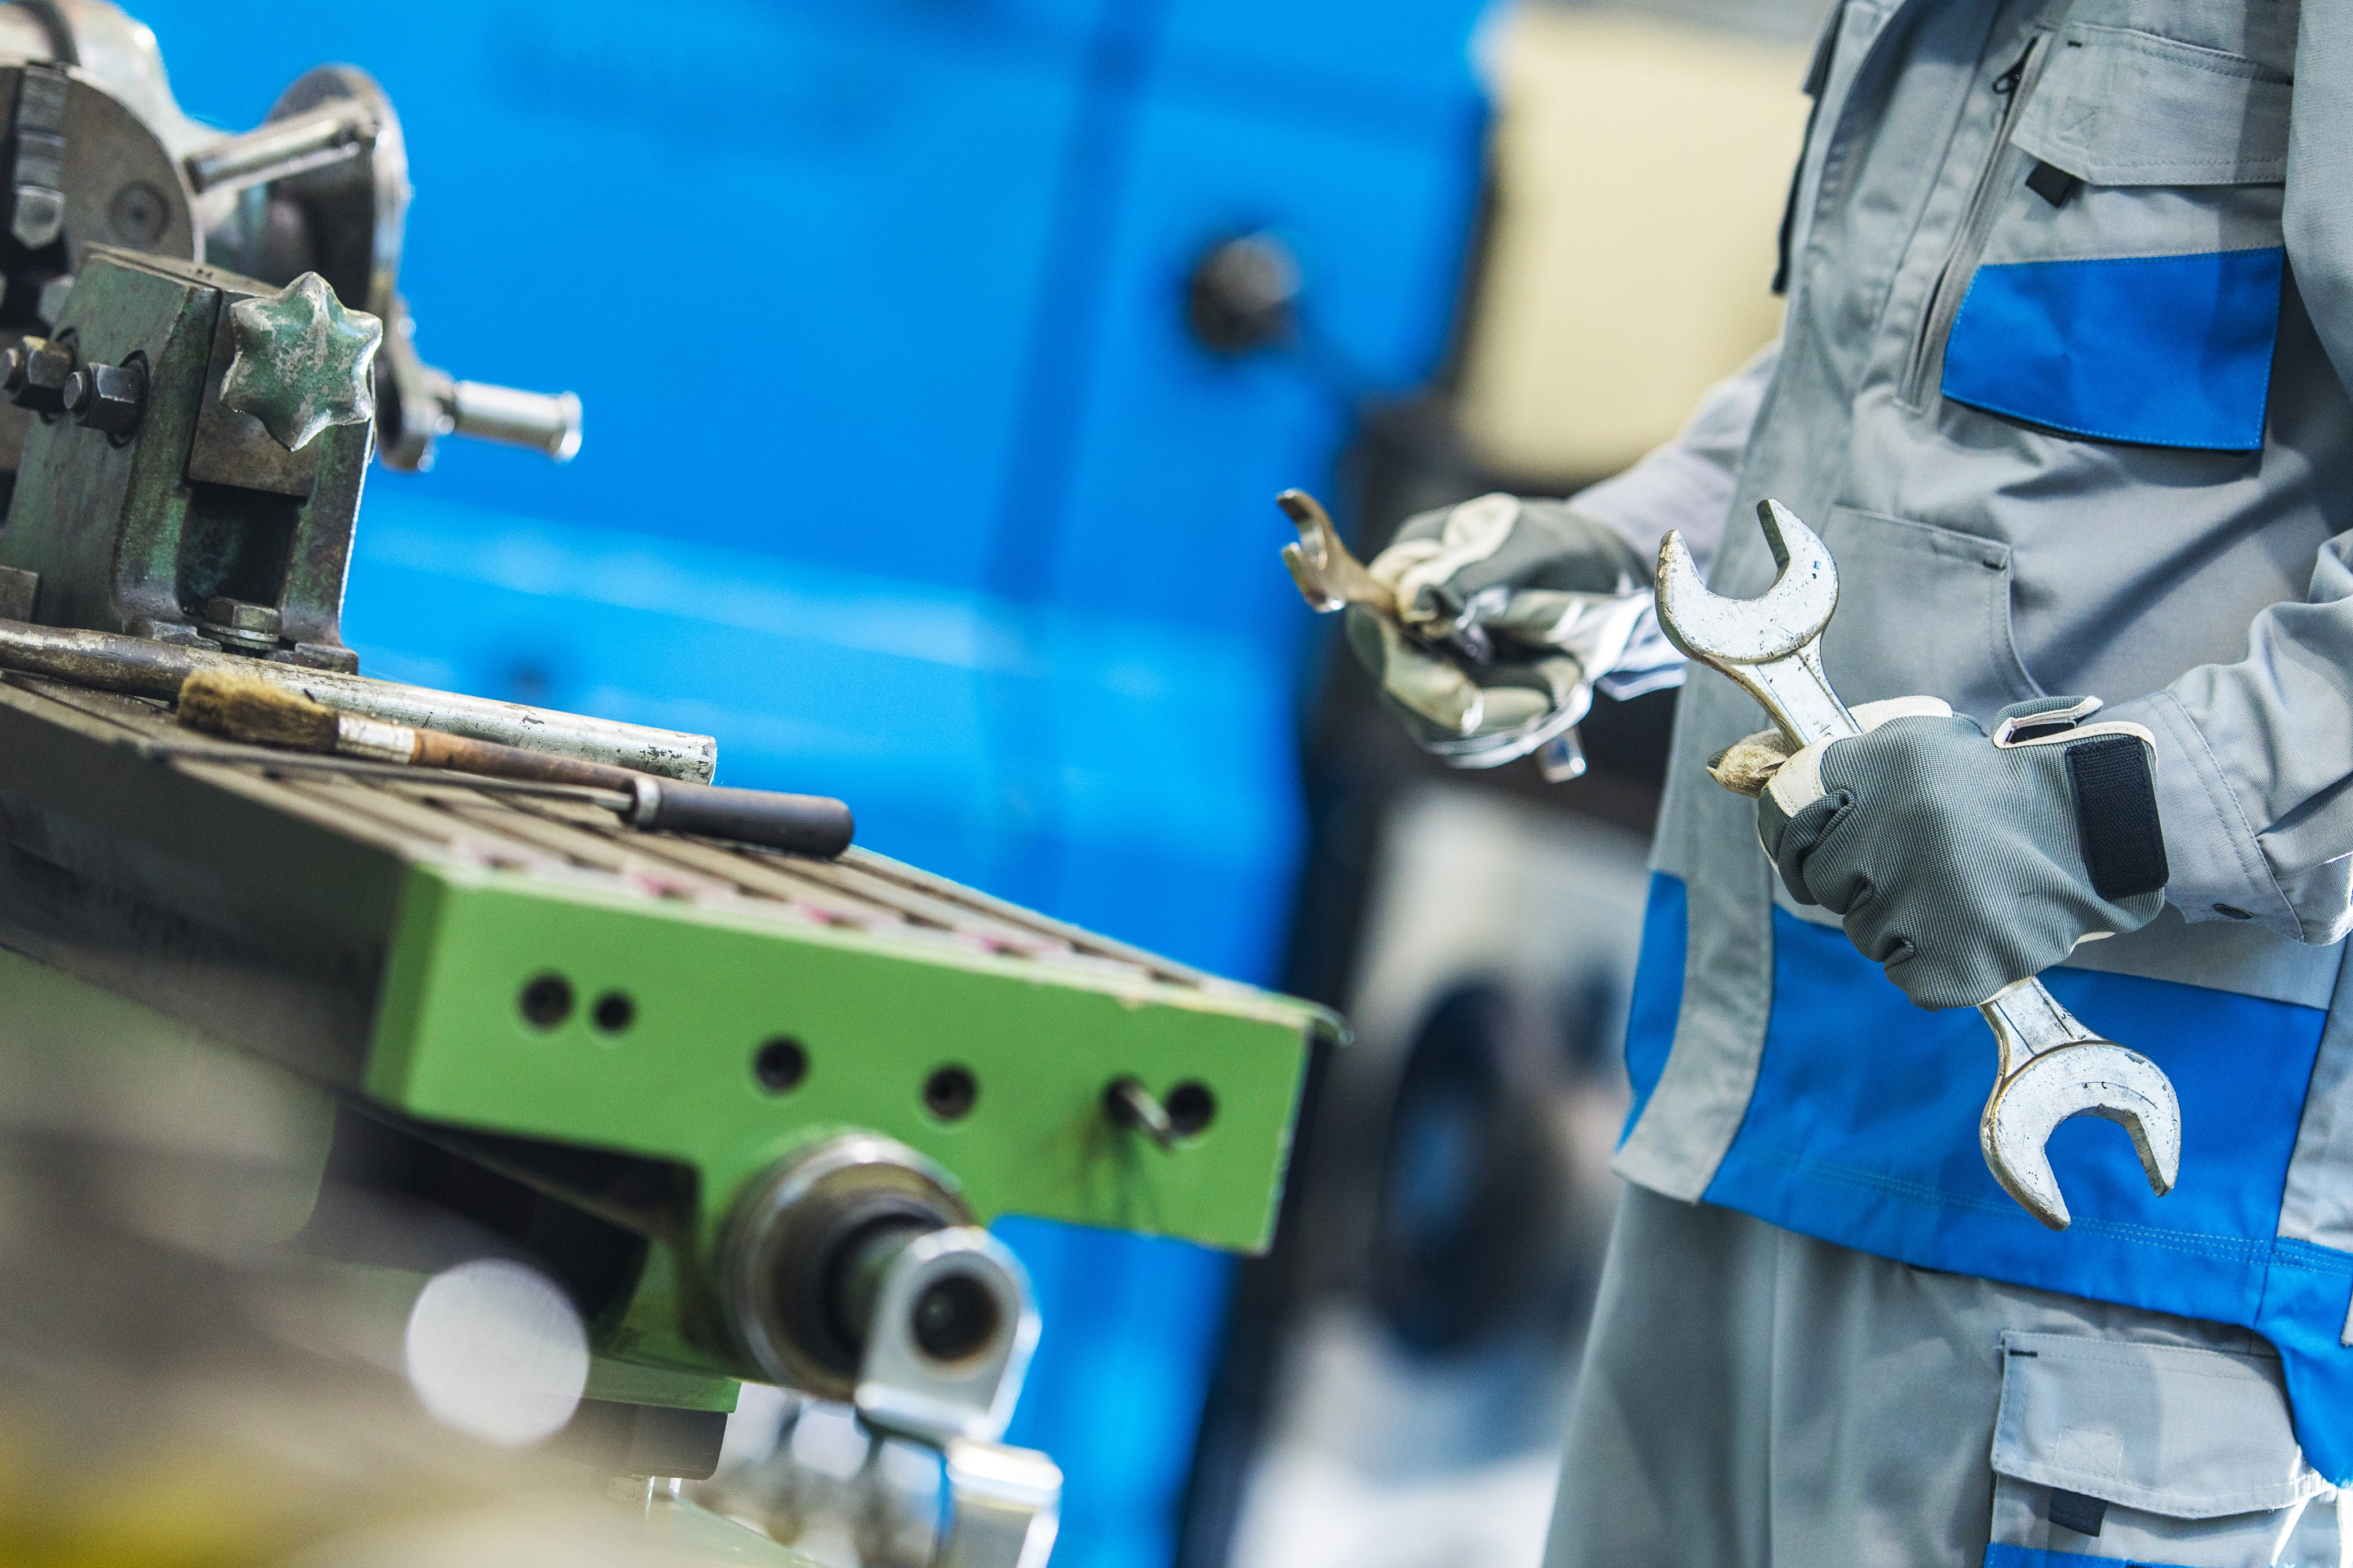 What does Lean Manufacturing mean?